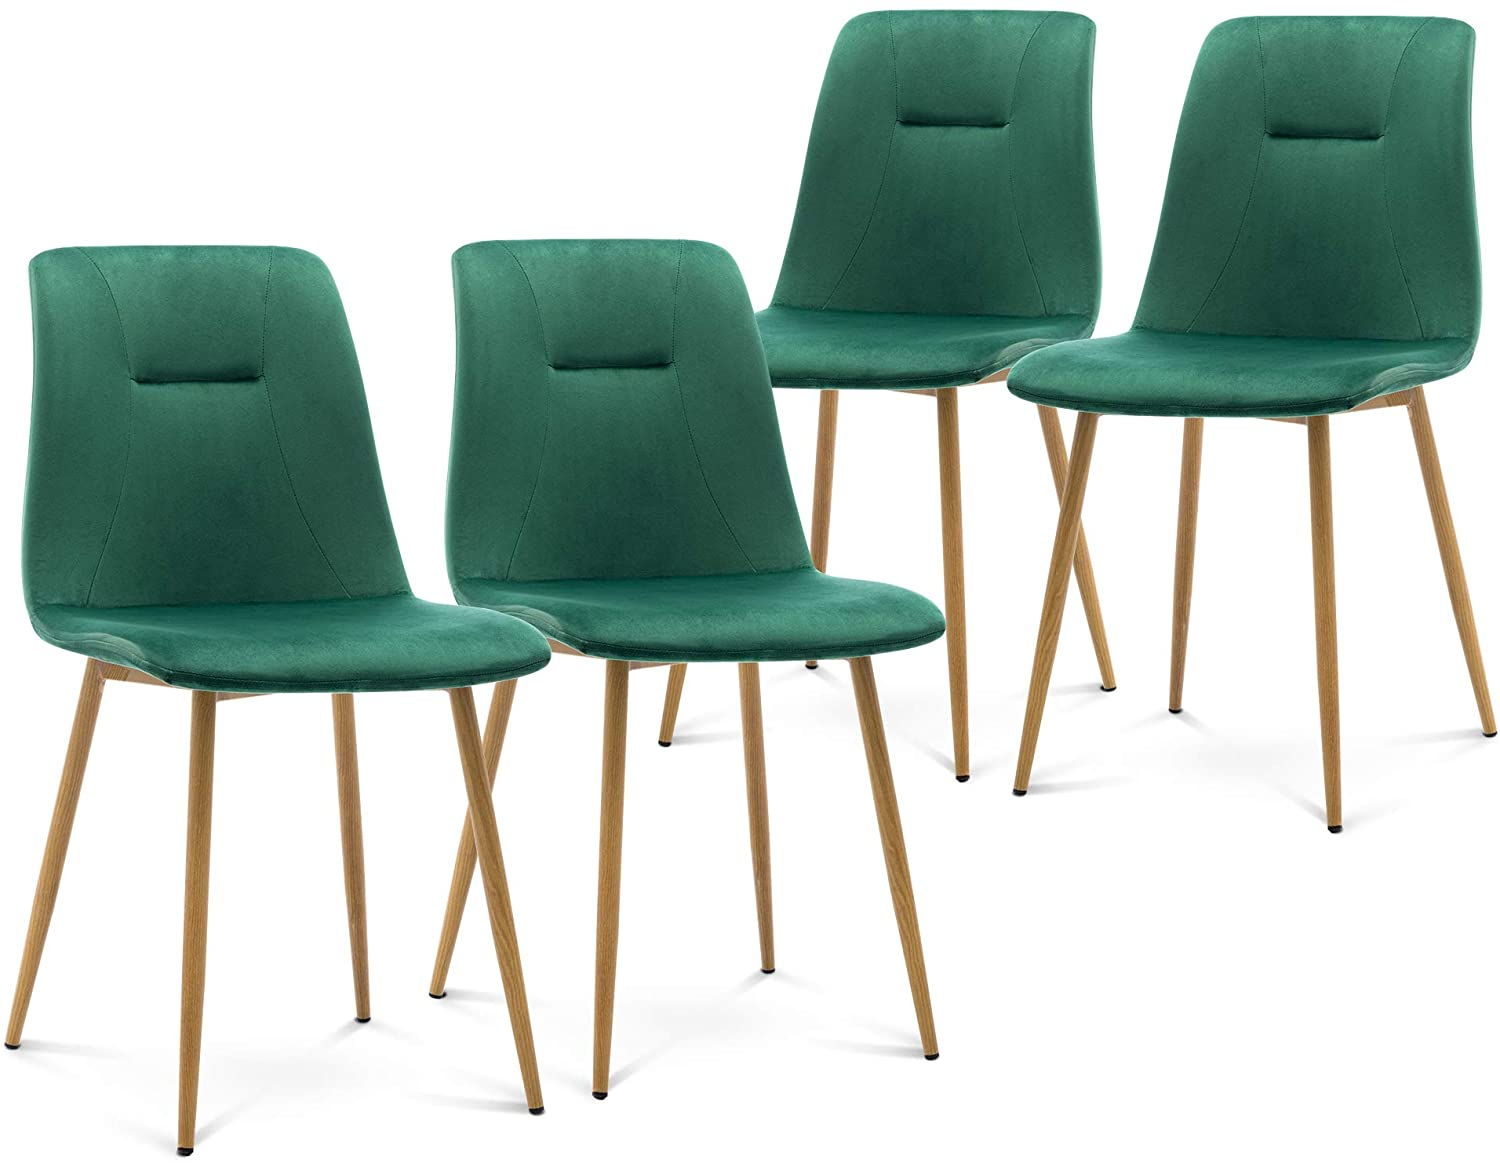 Modern Living Room Accent Armless Chairs Set of 4 Velvet Dining Chairs Mid Century Upholstered Kitchen Chairs Side Chairs with Metal Legs for Dining Room Living Room Bedroom Kitchen